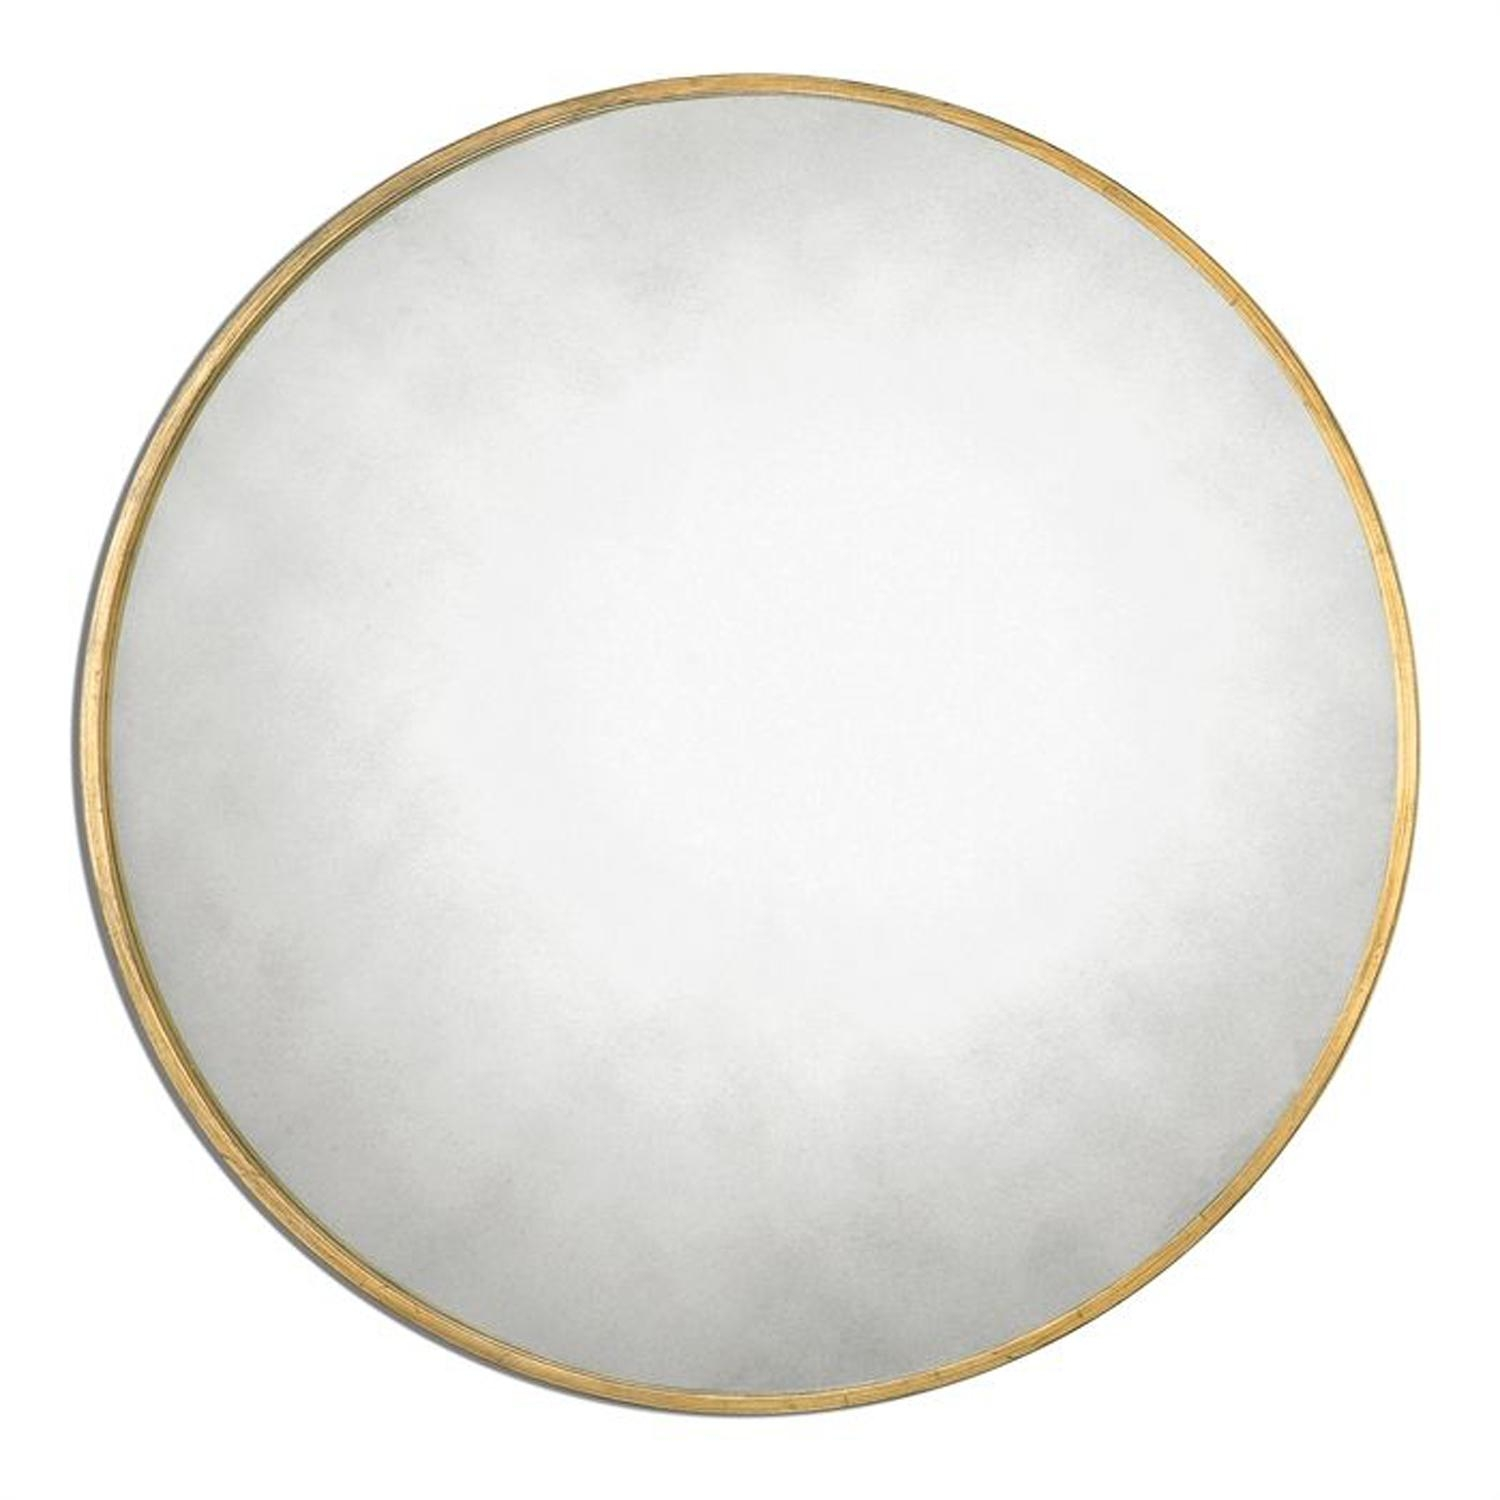 Junius Round Gold Round Mirror Uttermost Wall Mirror Mirrors Home Inside Antique Round Mirror (Image 8 of 20)